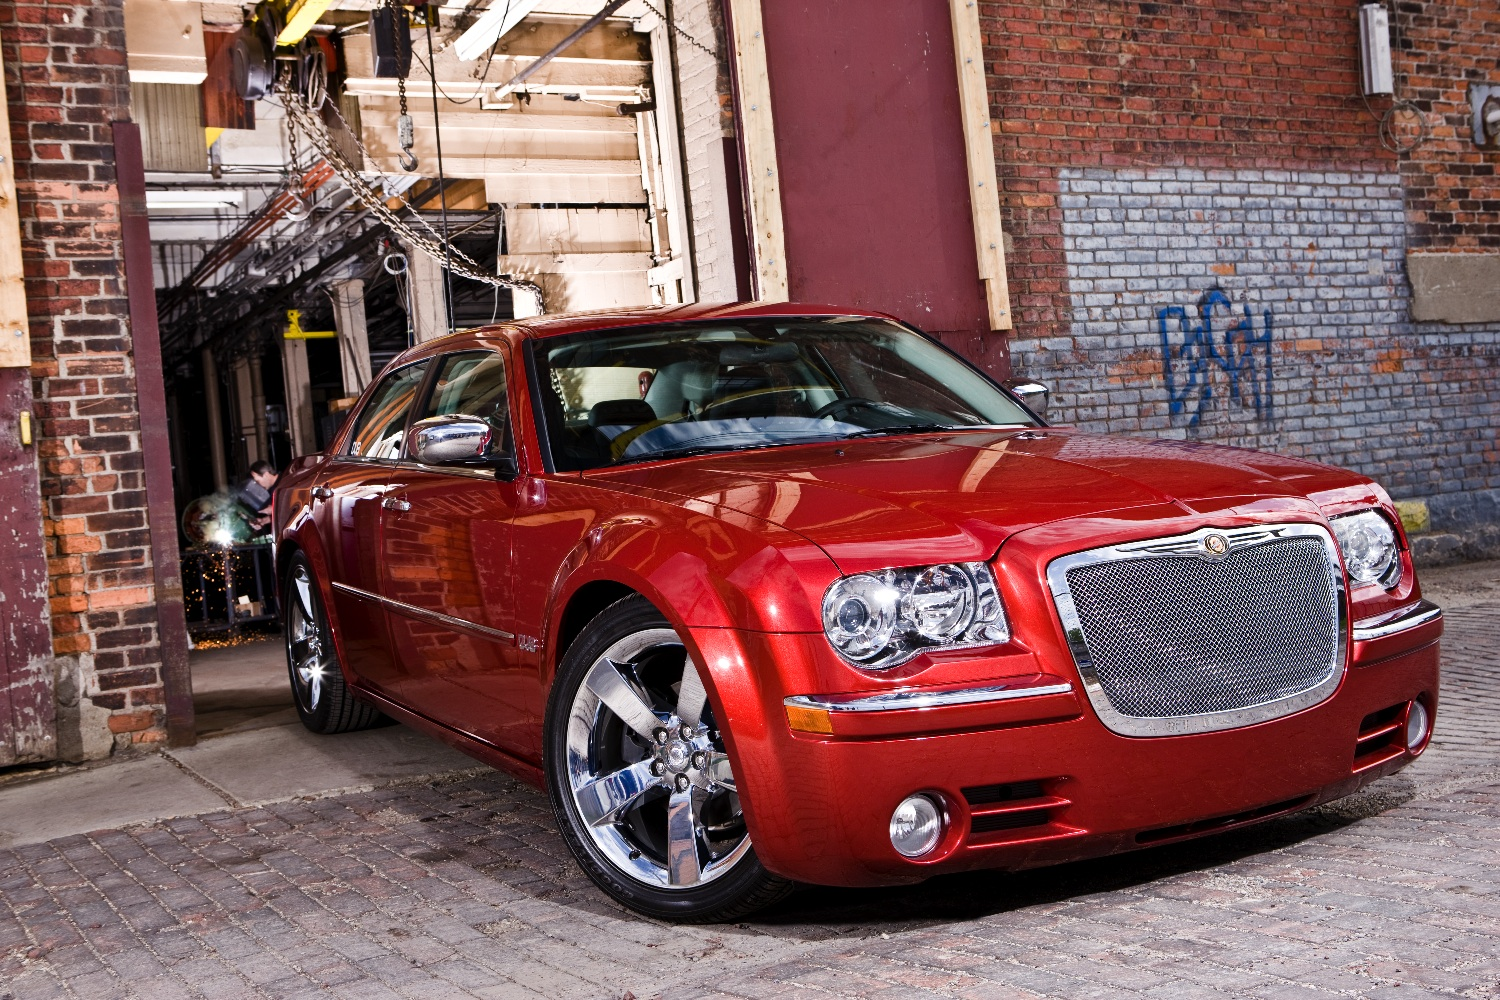 chrysler 300 dub edition photoshoot by lau ardelean at. Black Bedroom Furniture Sets. Home Design Ideas